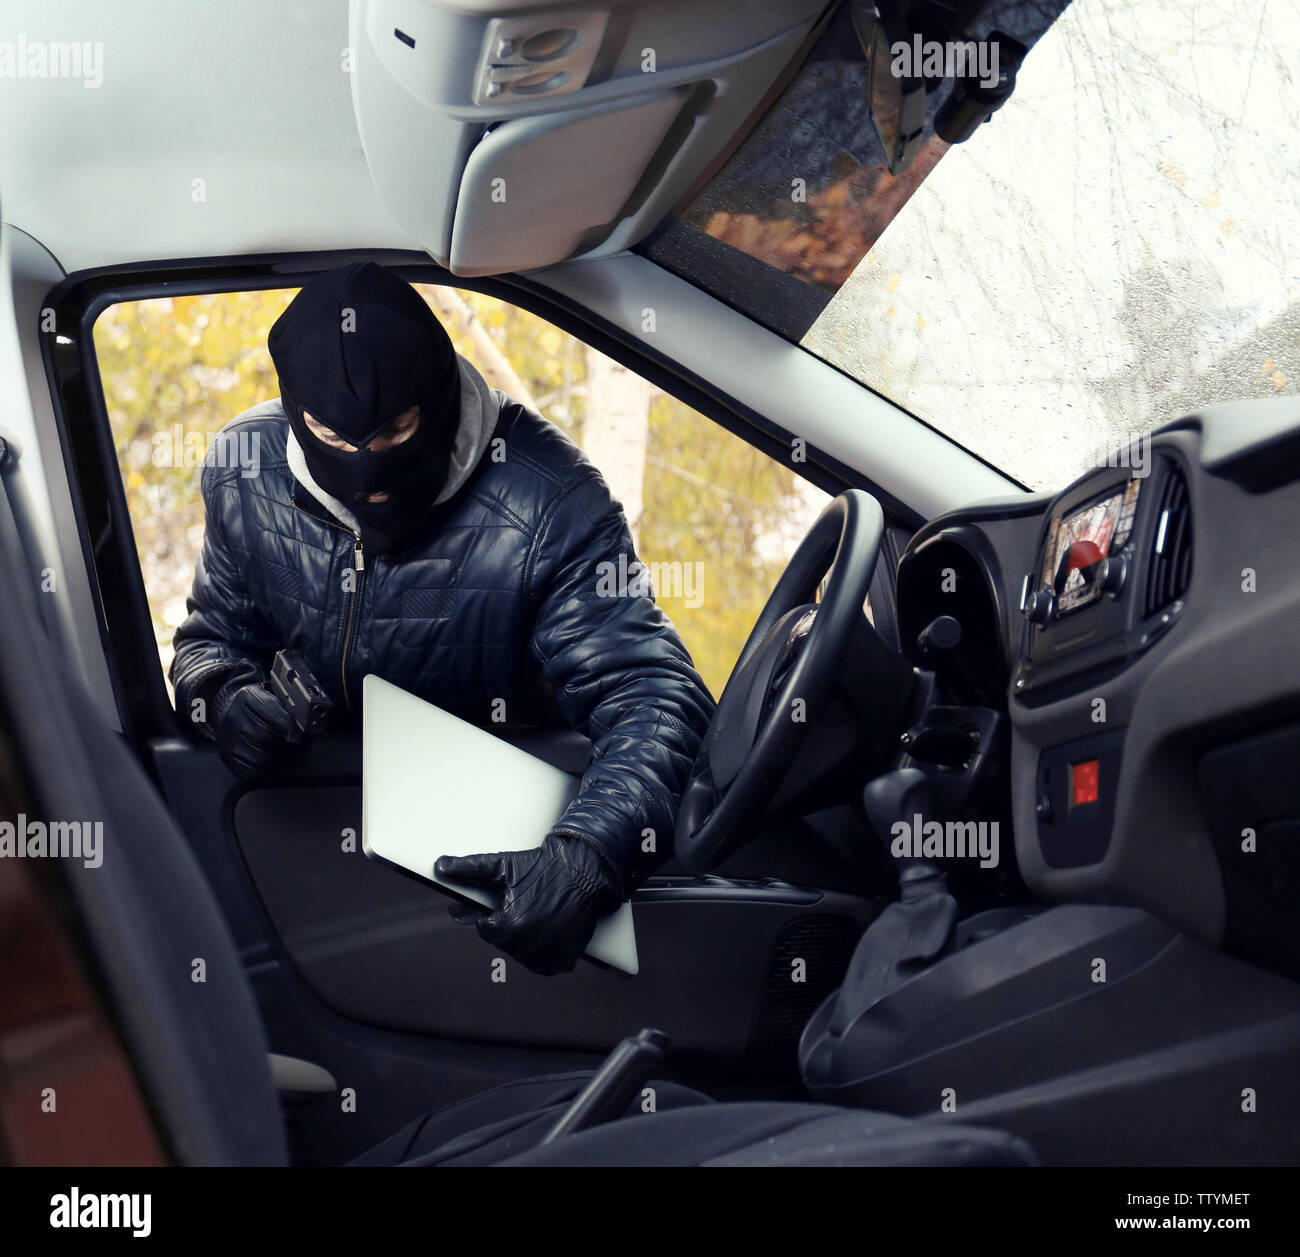 Thief in mask stealing laptop from a car - Stock Image